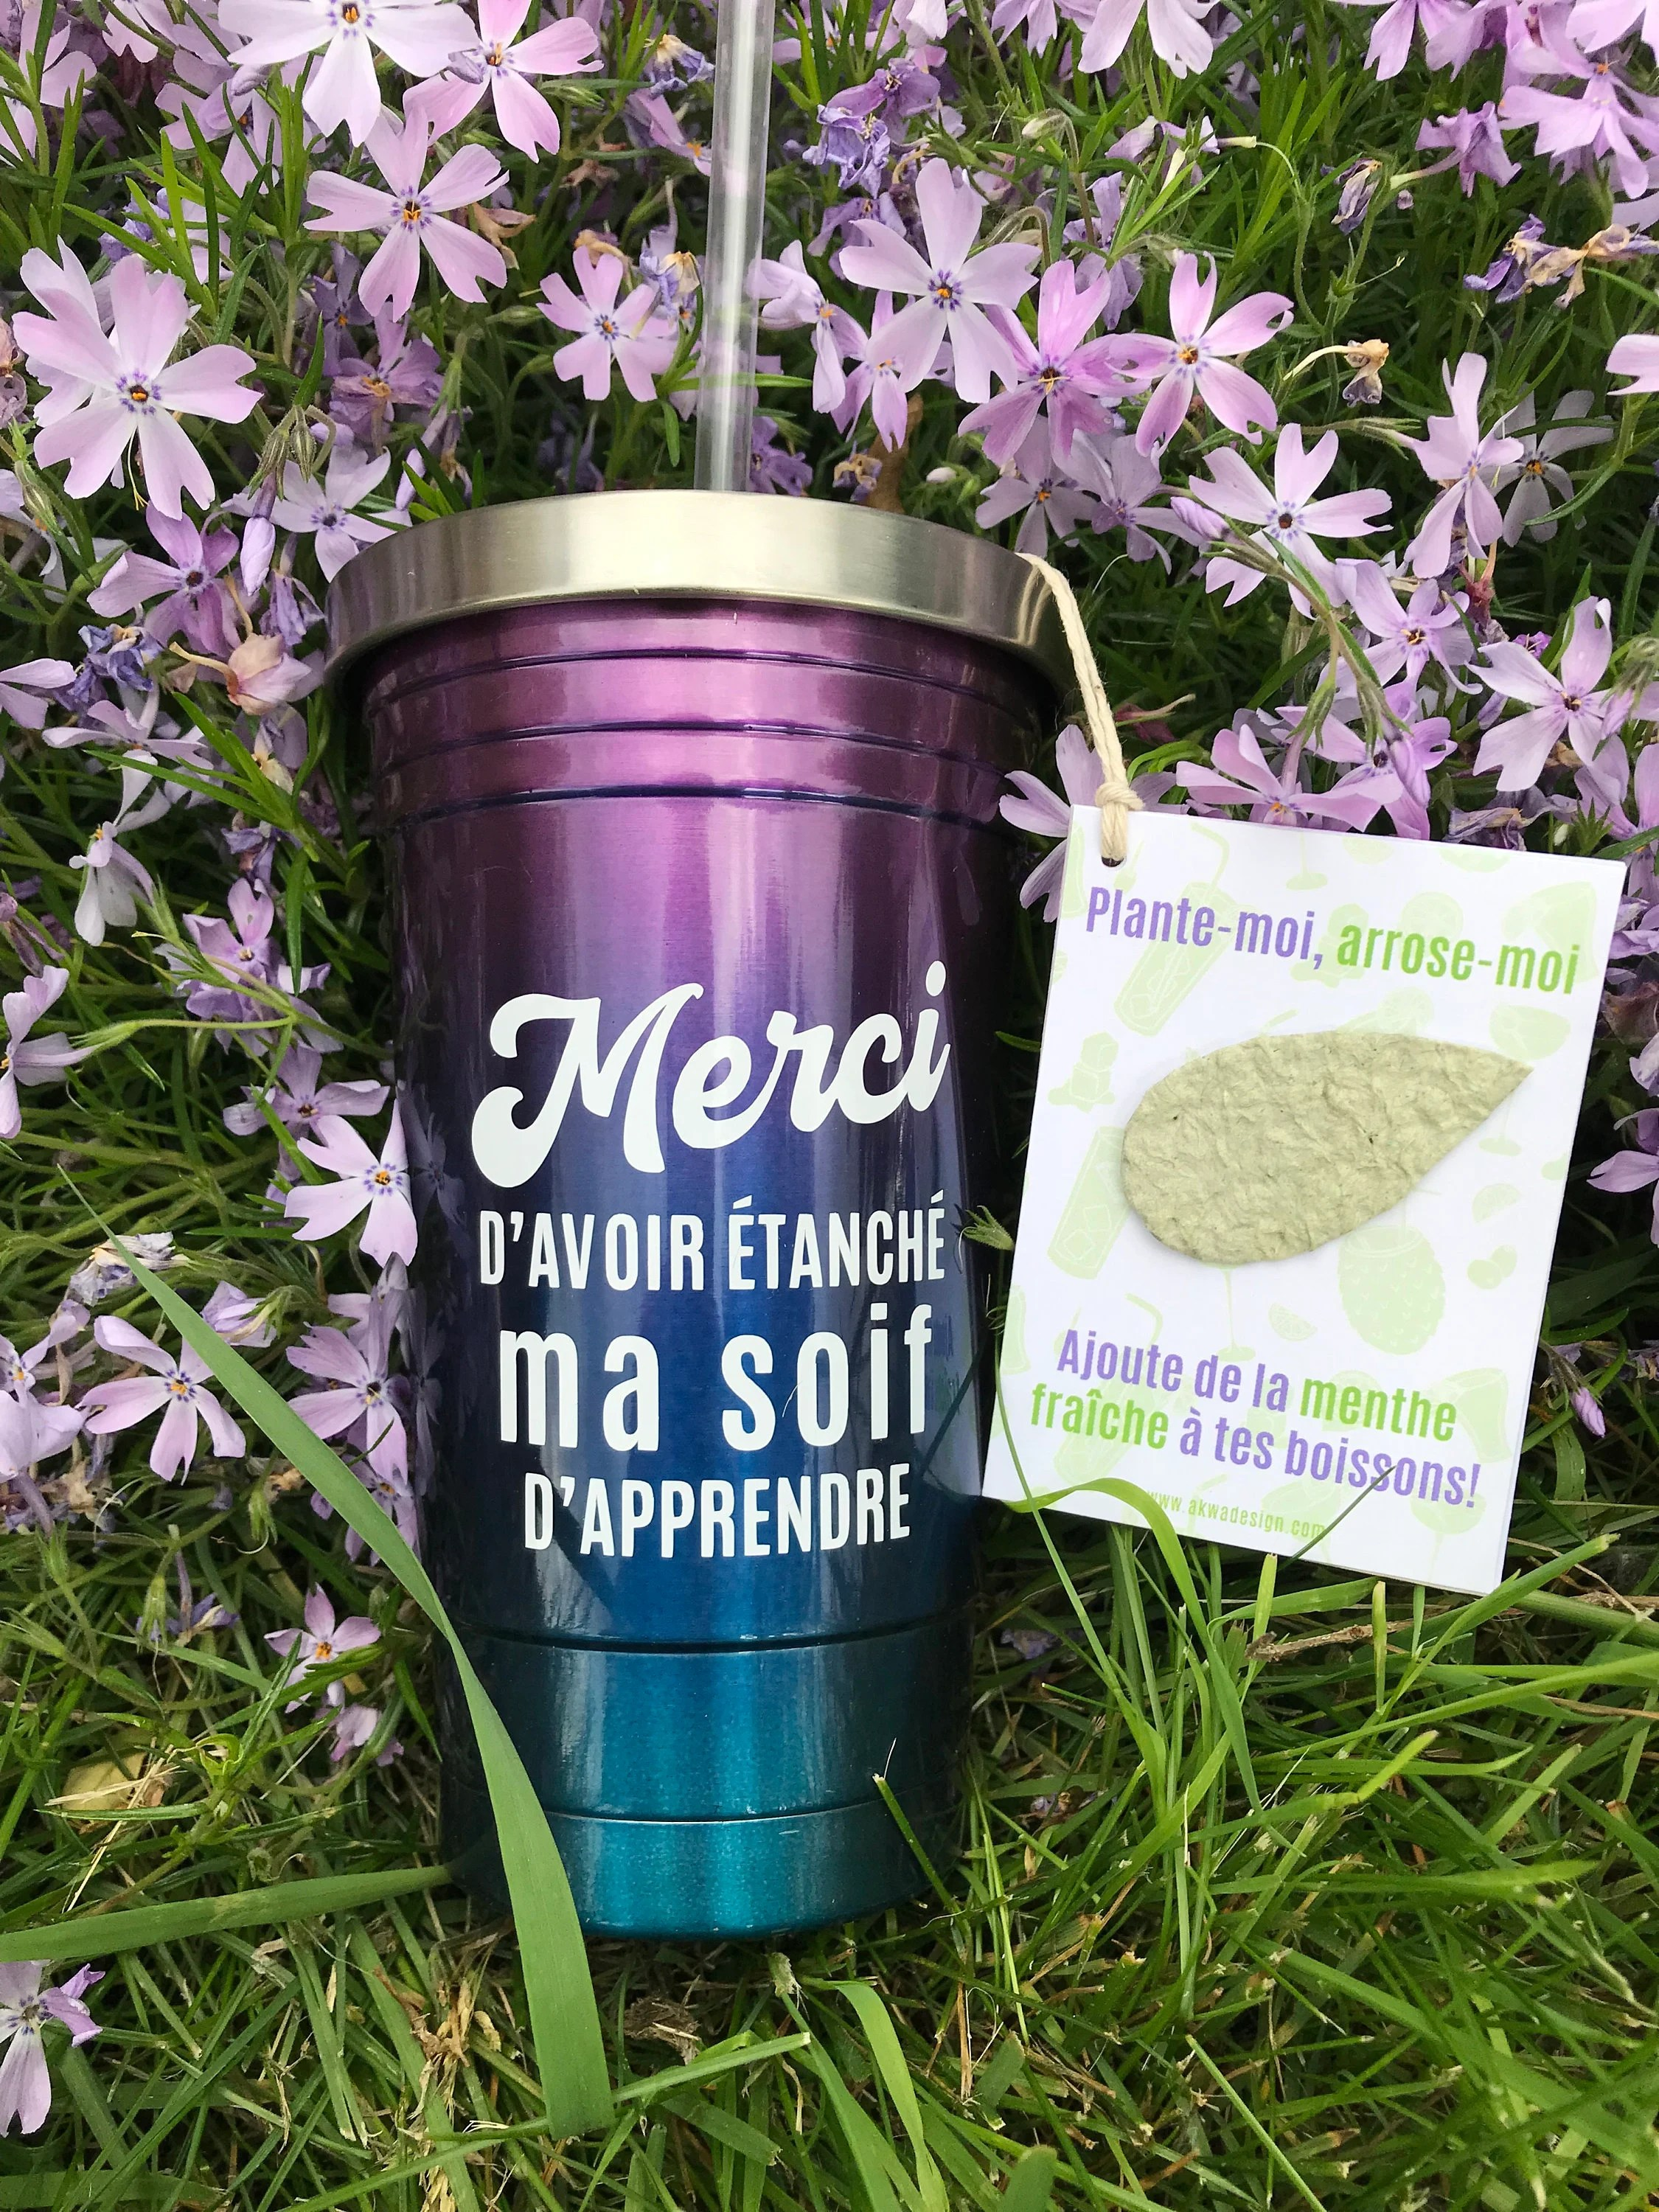 Gift for teacher and educator – thank you for quenching my thirst for learning – personalized – seeded paper, sticker – Glass not included                                                                Akwadesign         From shop Akwadesign                               5 out of 5 stars                                                                                                                                                                                                                                                          (151)                 151 reviews                                                      CA$14.00                                                                   FREE delivery